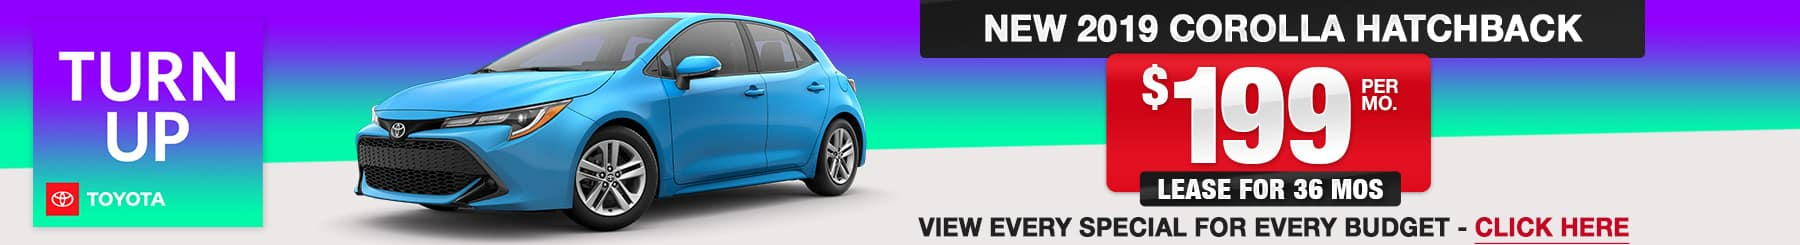 2019 Corolla Hatchback Lease or Finance Offers